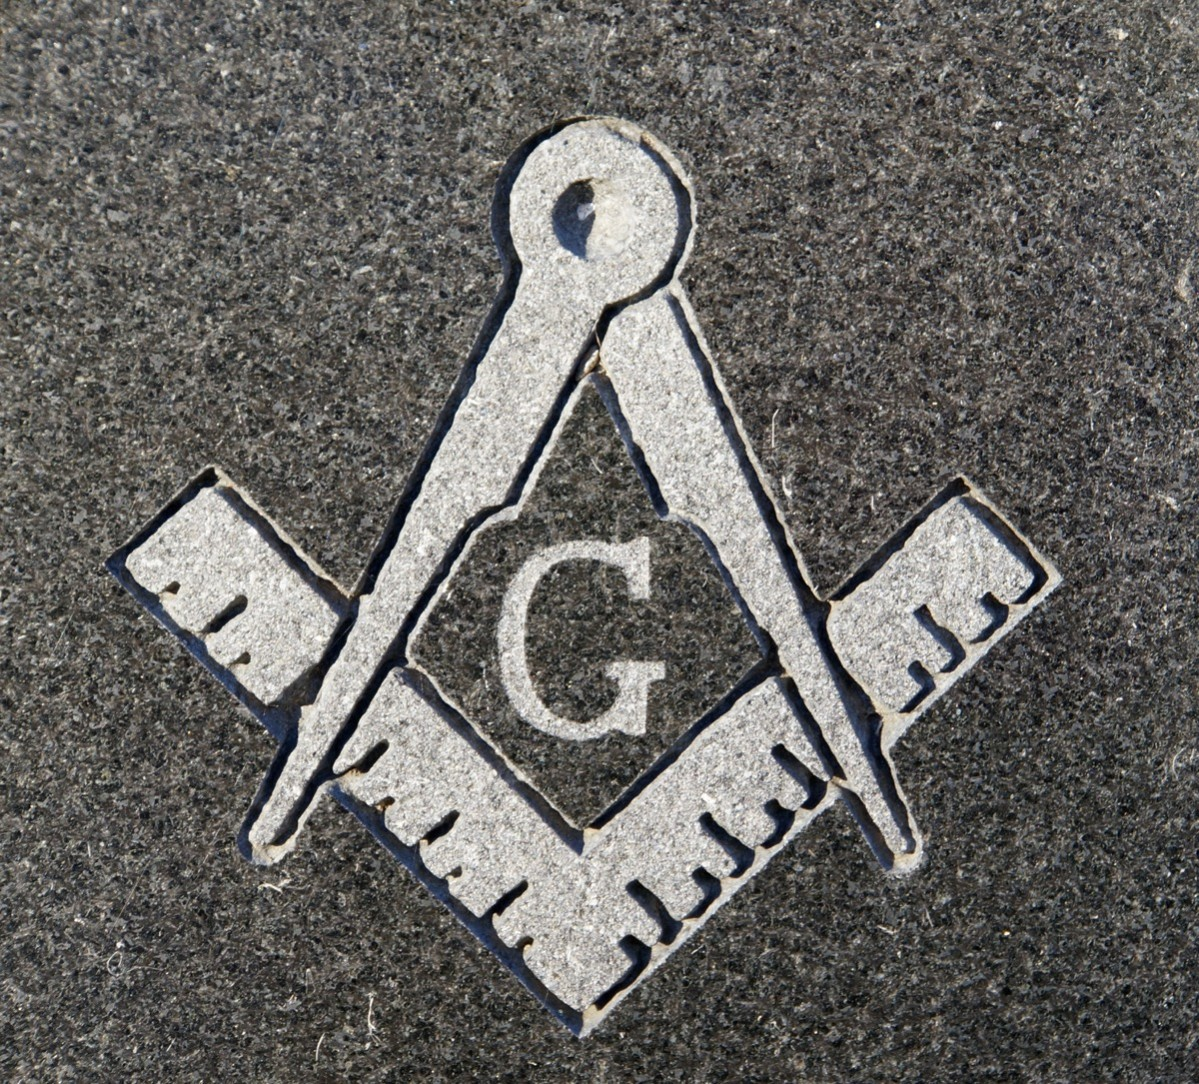 Collective forest hill cemetery a guide the g framed by a compass and square is the most recognizable symbol of the freemasons photo by william cronon buycottarizona